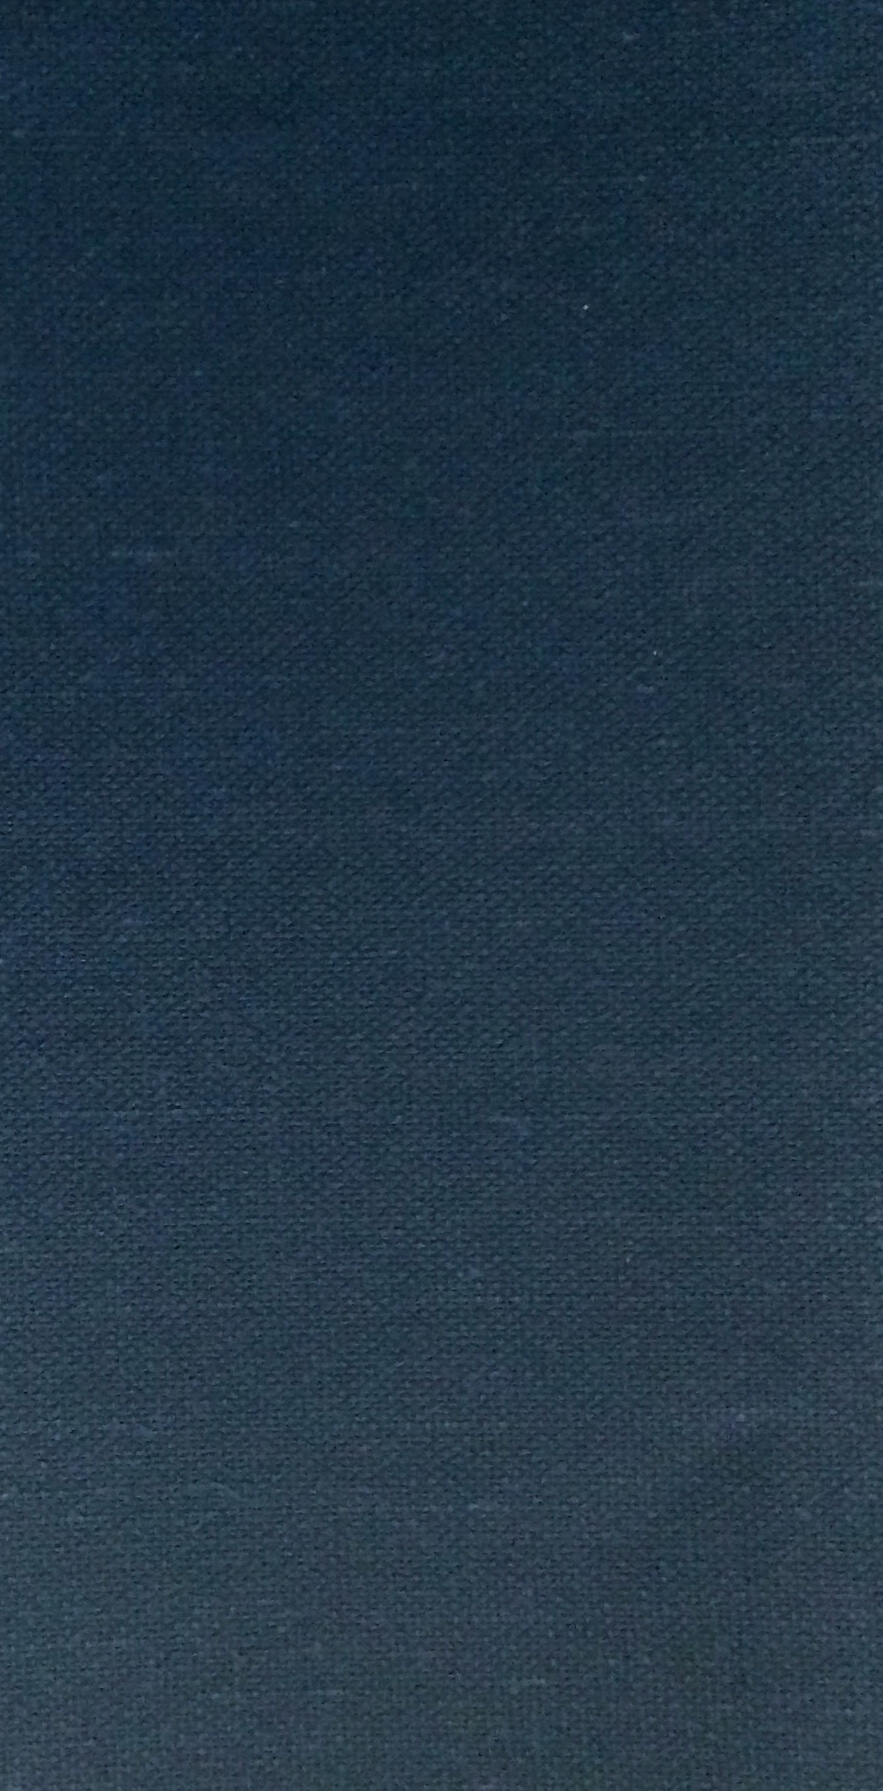 Arrestox Blue Linen